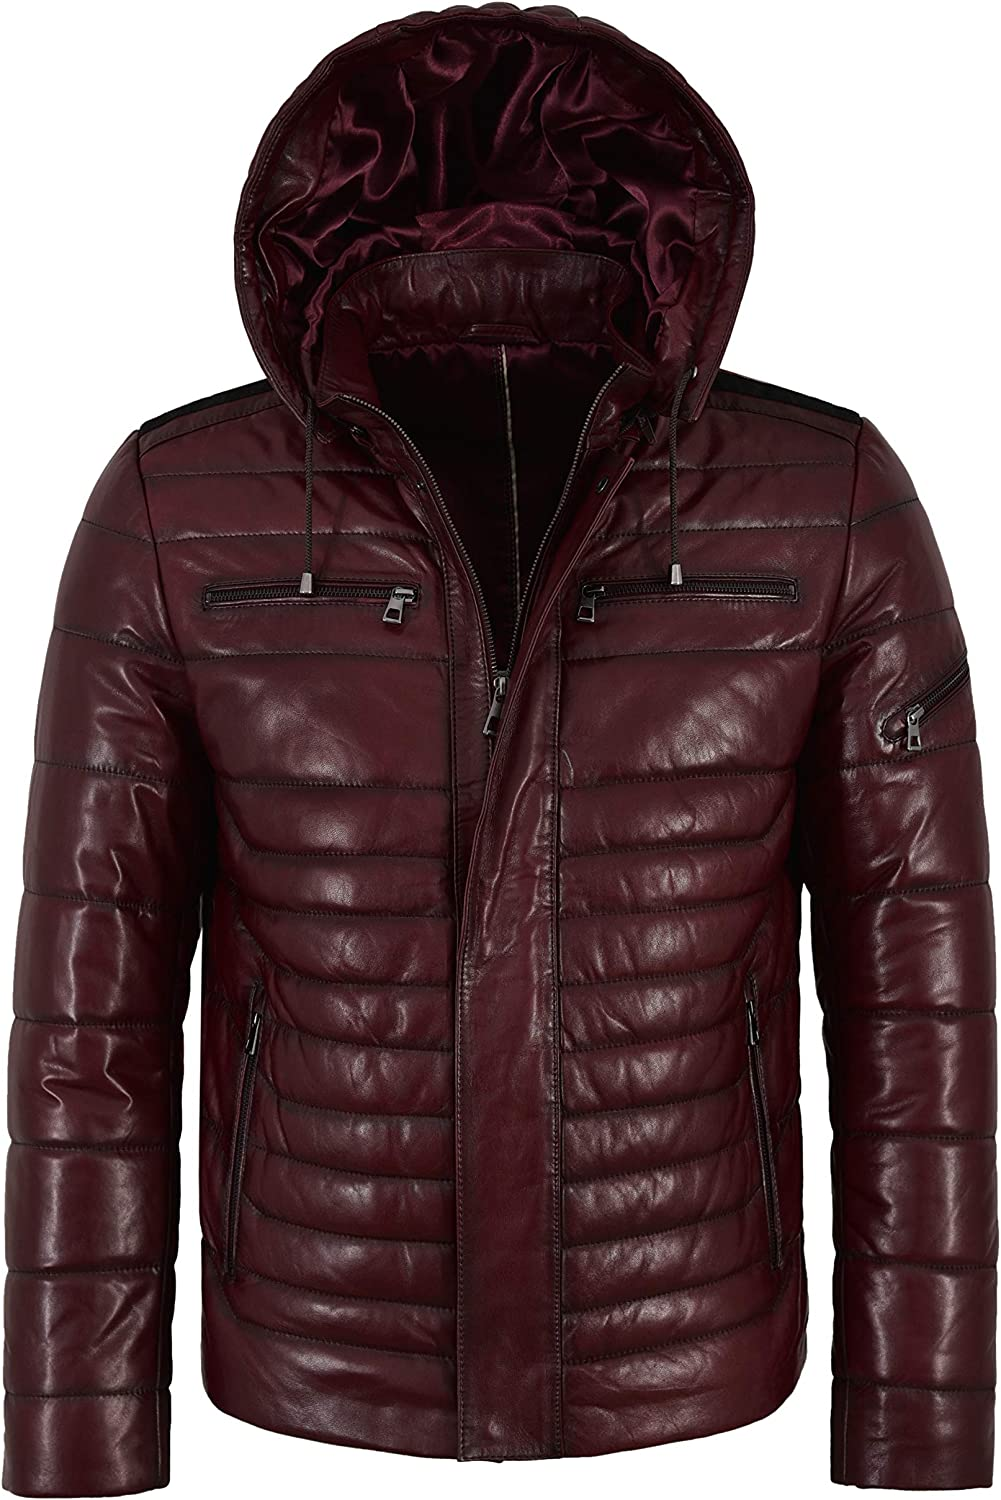 Men's Puffer Hooded Lambskin Leather Jacket Real Napa Fully Quilted Design 2006